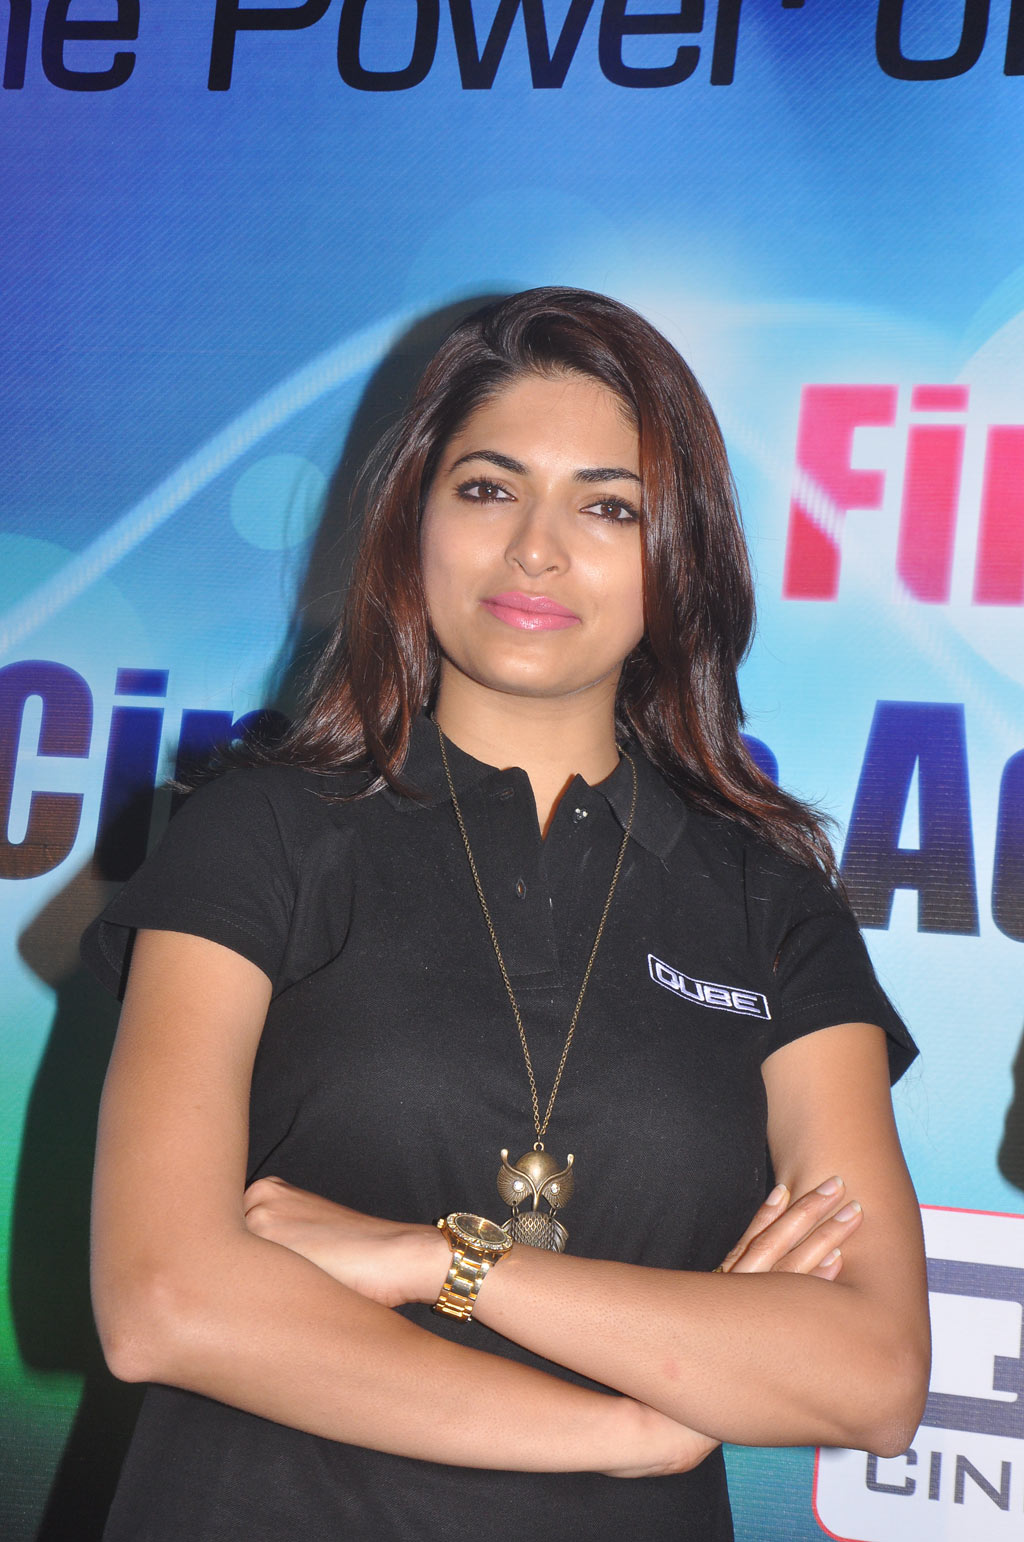 Parvathy Omanakuttan New @ Cifw Pics Parvat14